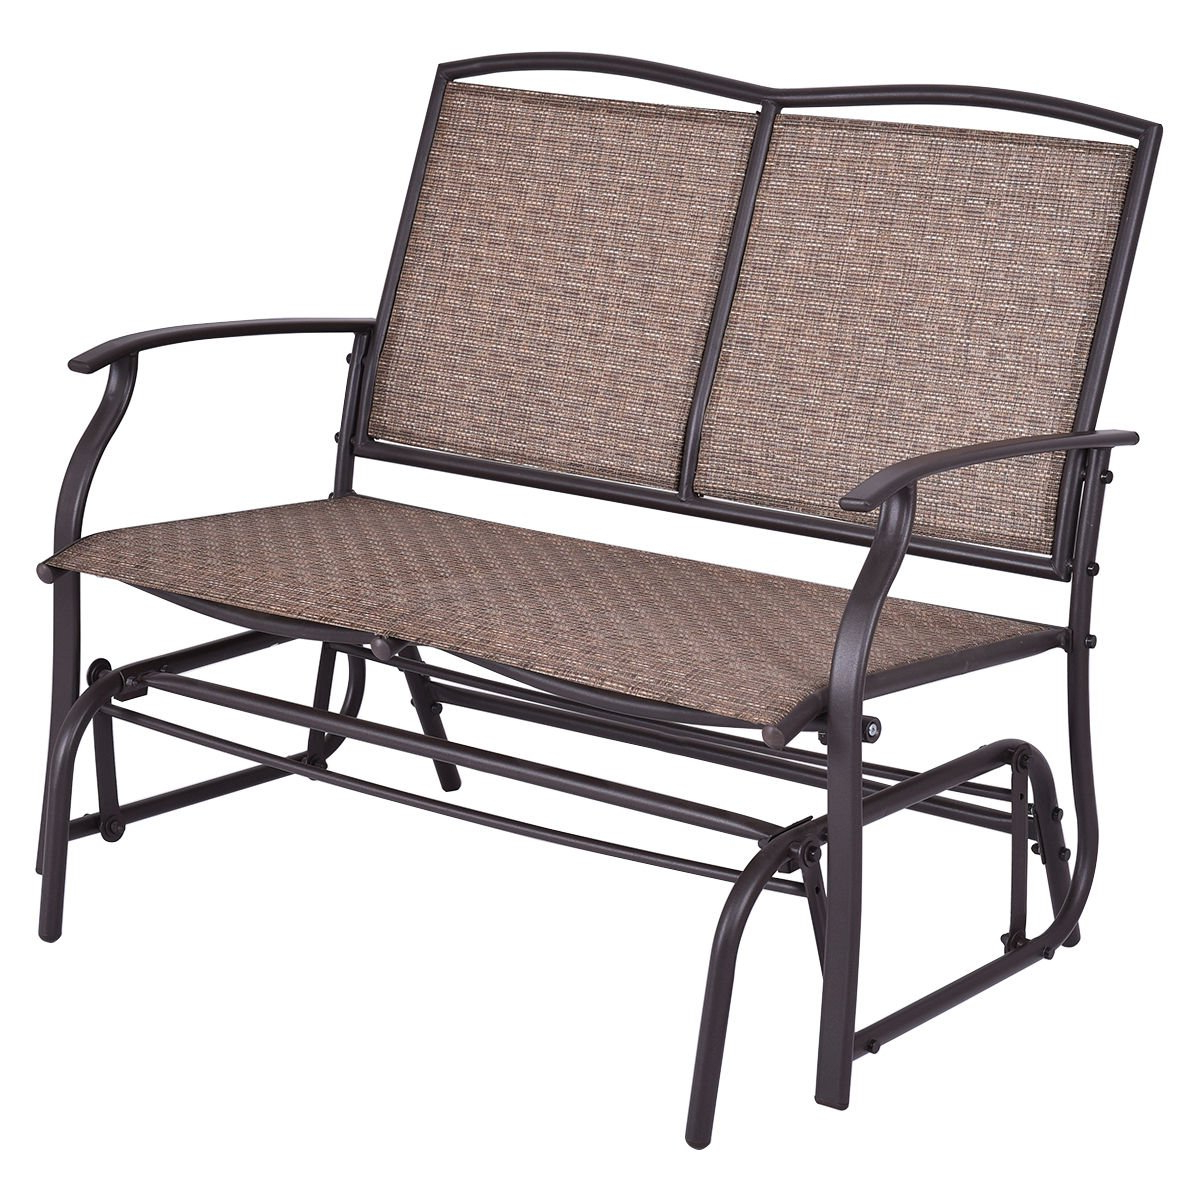 2 Person Antique Black Iron Outdoor Gliders Regarding 2019 Amazon: Maximumstore – Patio Glider Rocking Bench Double (View 7 of 30)